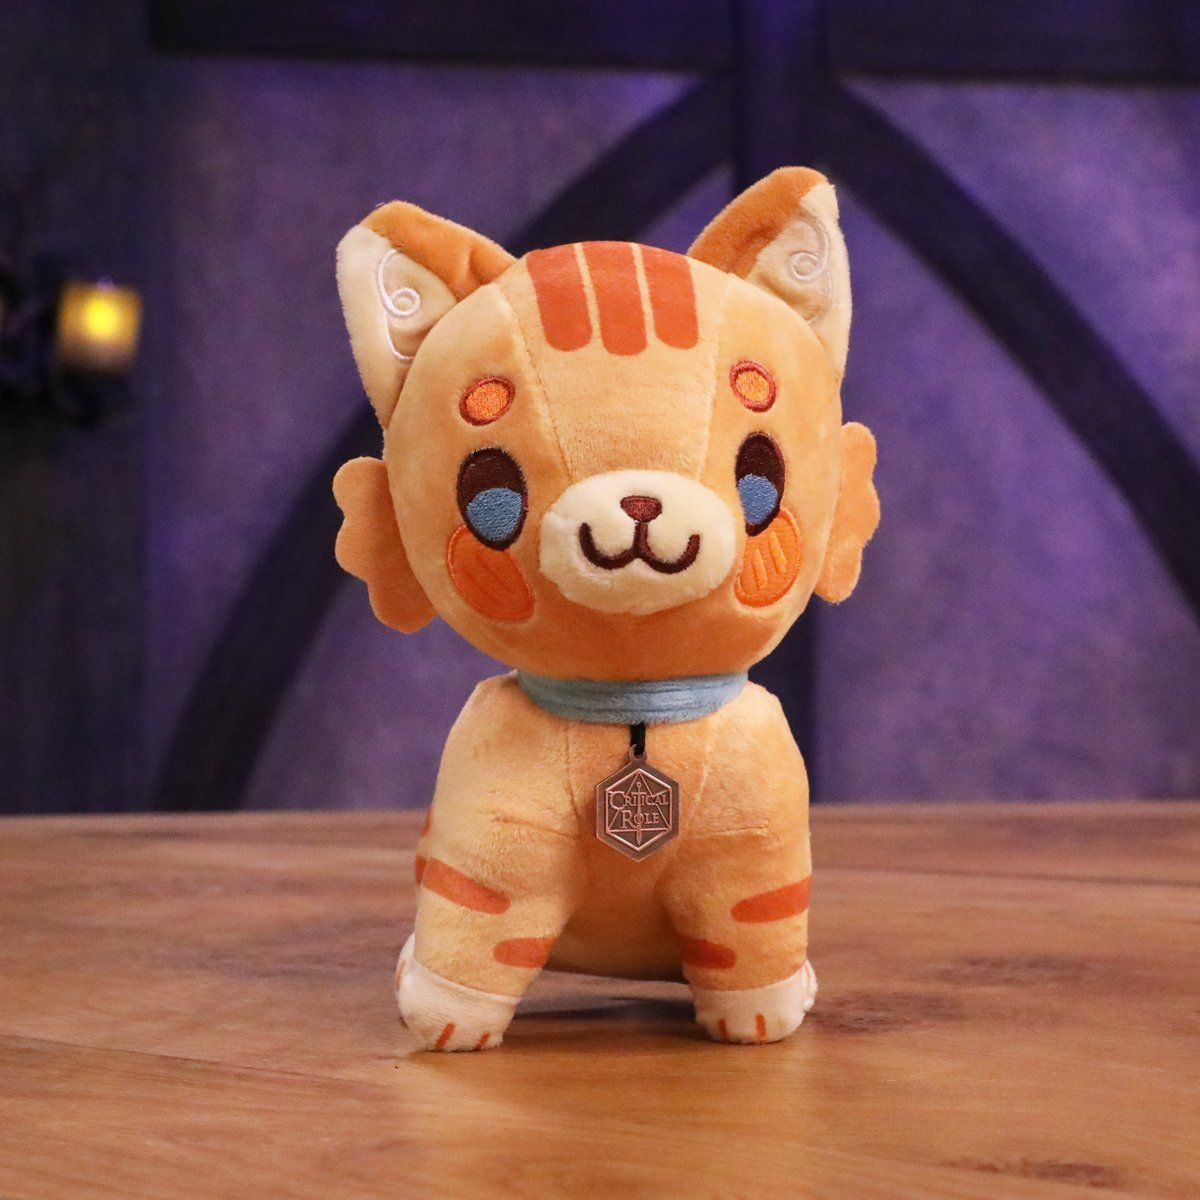 Summon this adorable Frumpkin Plush  from the Feywild to your side! This super soft kitty features embroidered details and wears a felt collar with a metal charm with the Critical Role logo on one side and a